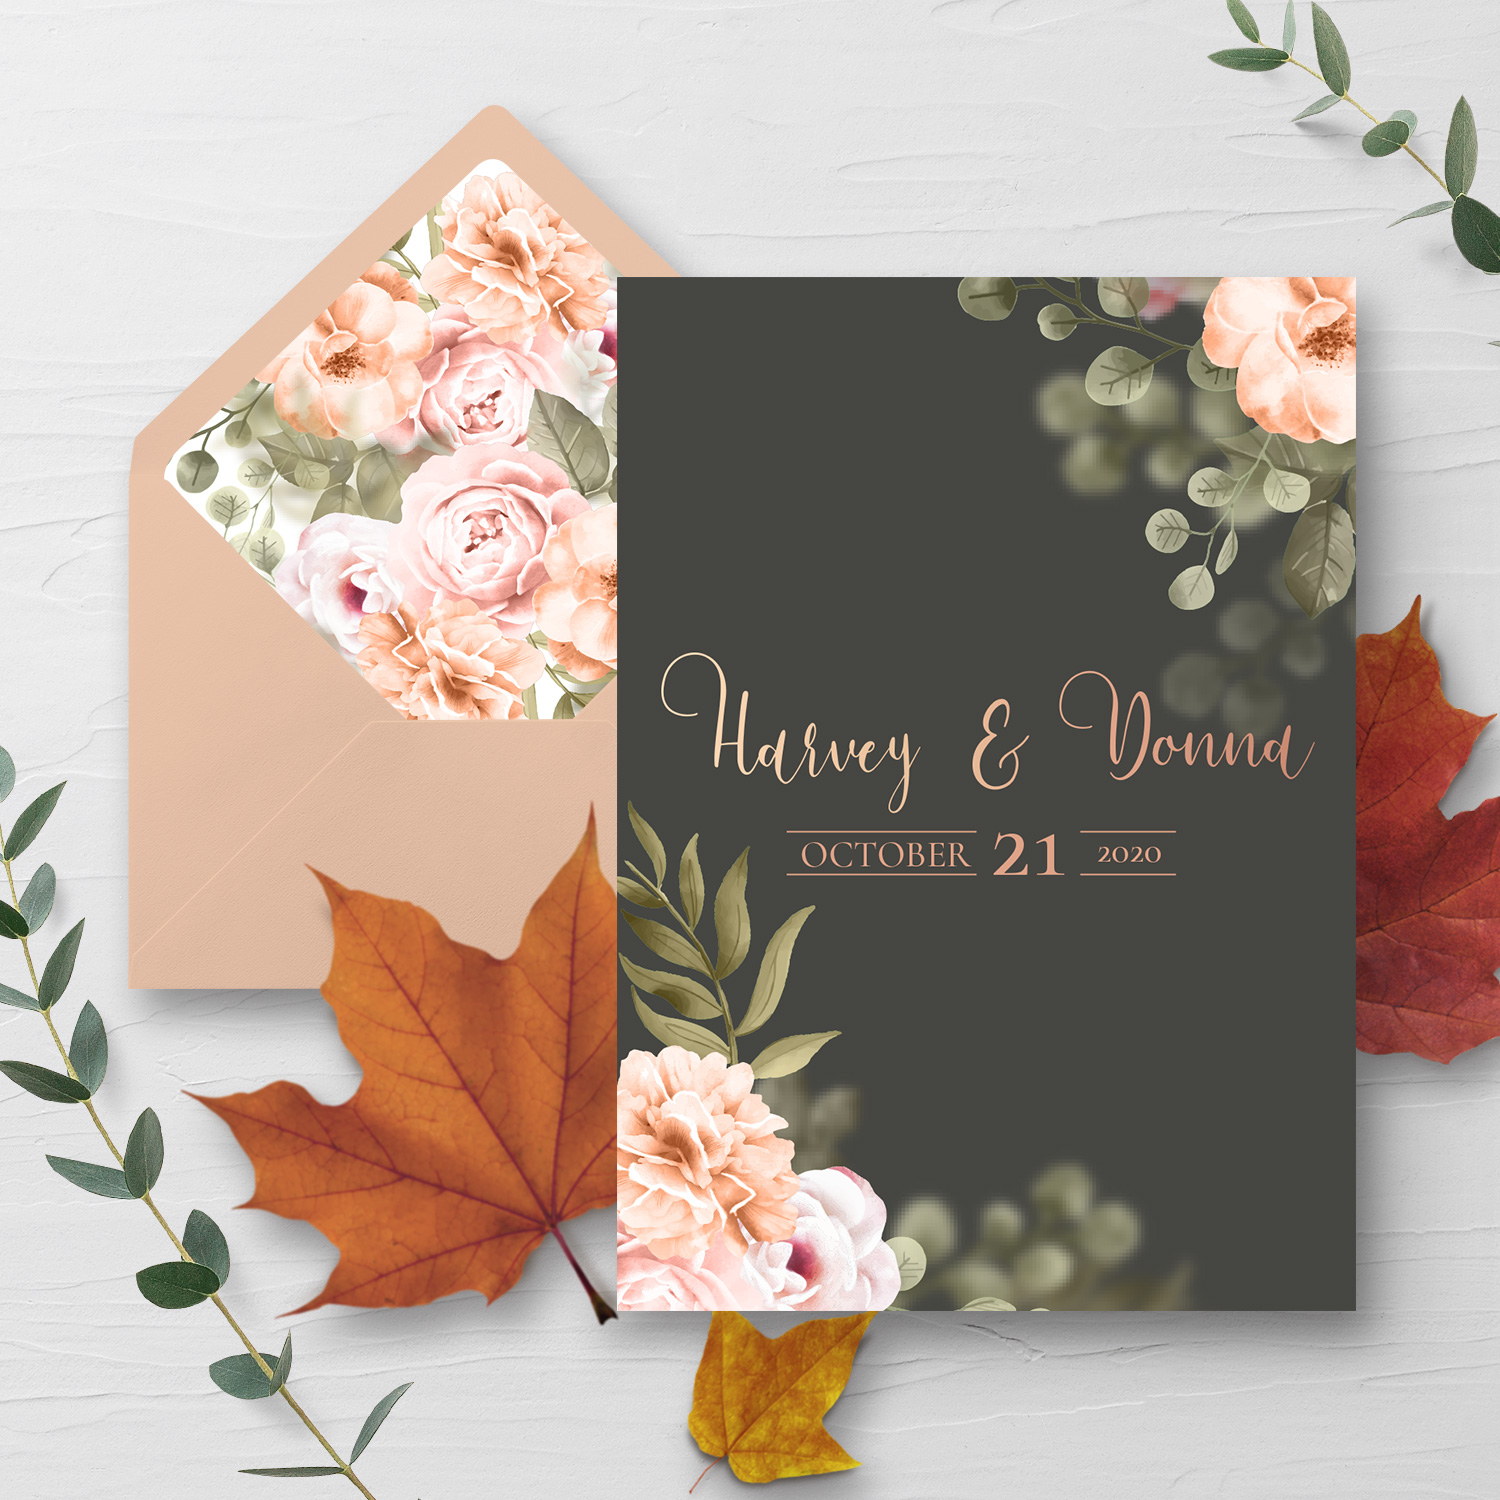 Wedding Invitations Wedding Stationery Inspiration Gallery The